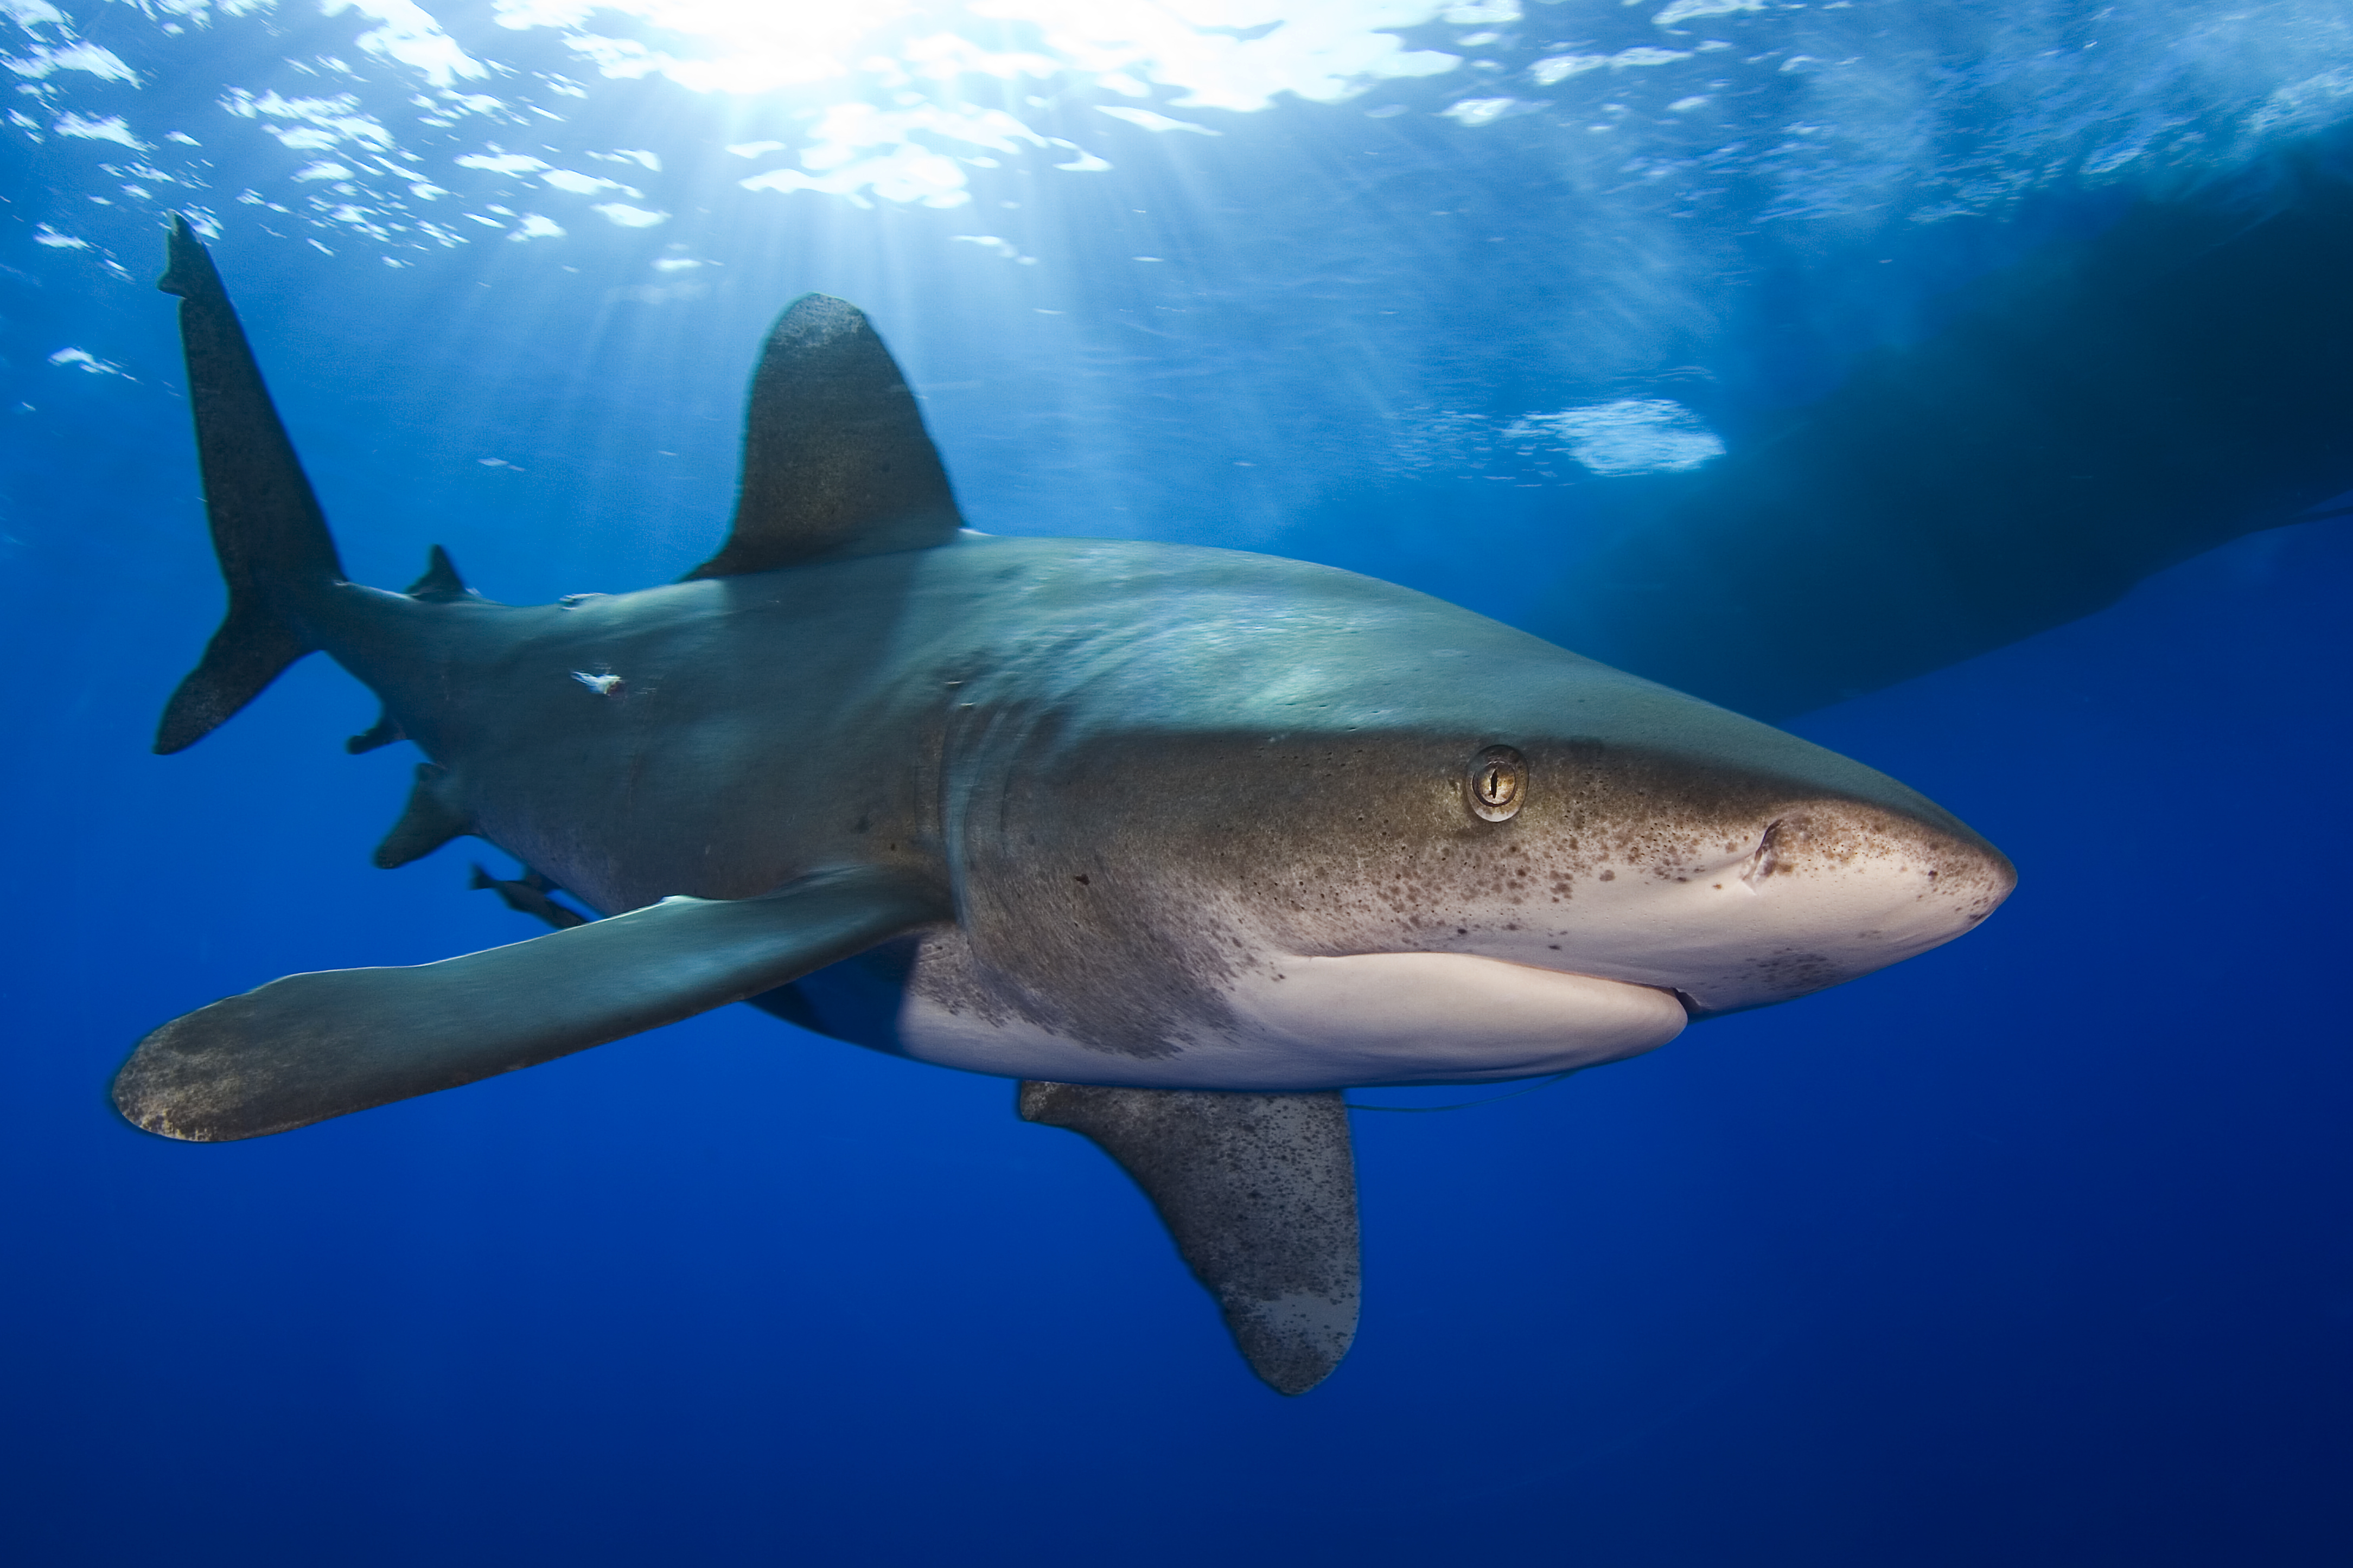 Environmental Groups Seek Protections For Whitetip Sharks